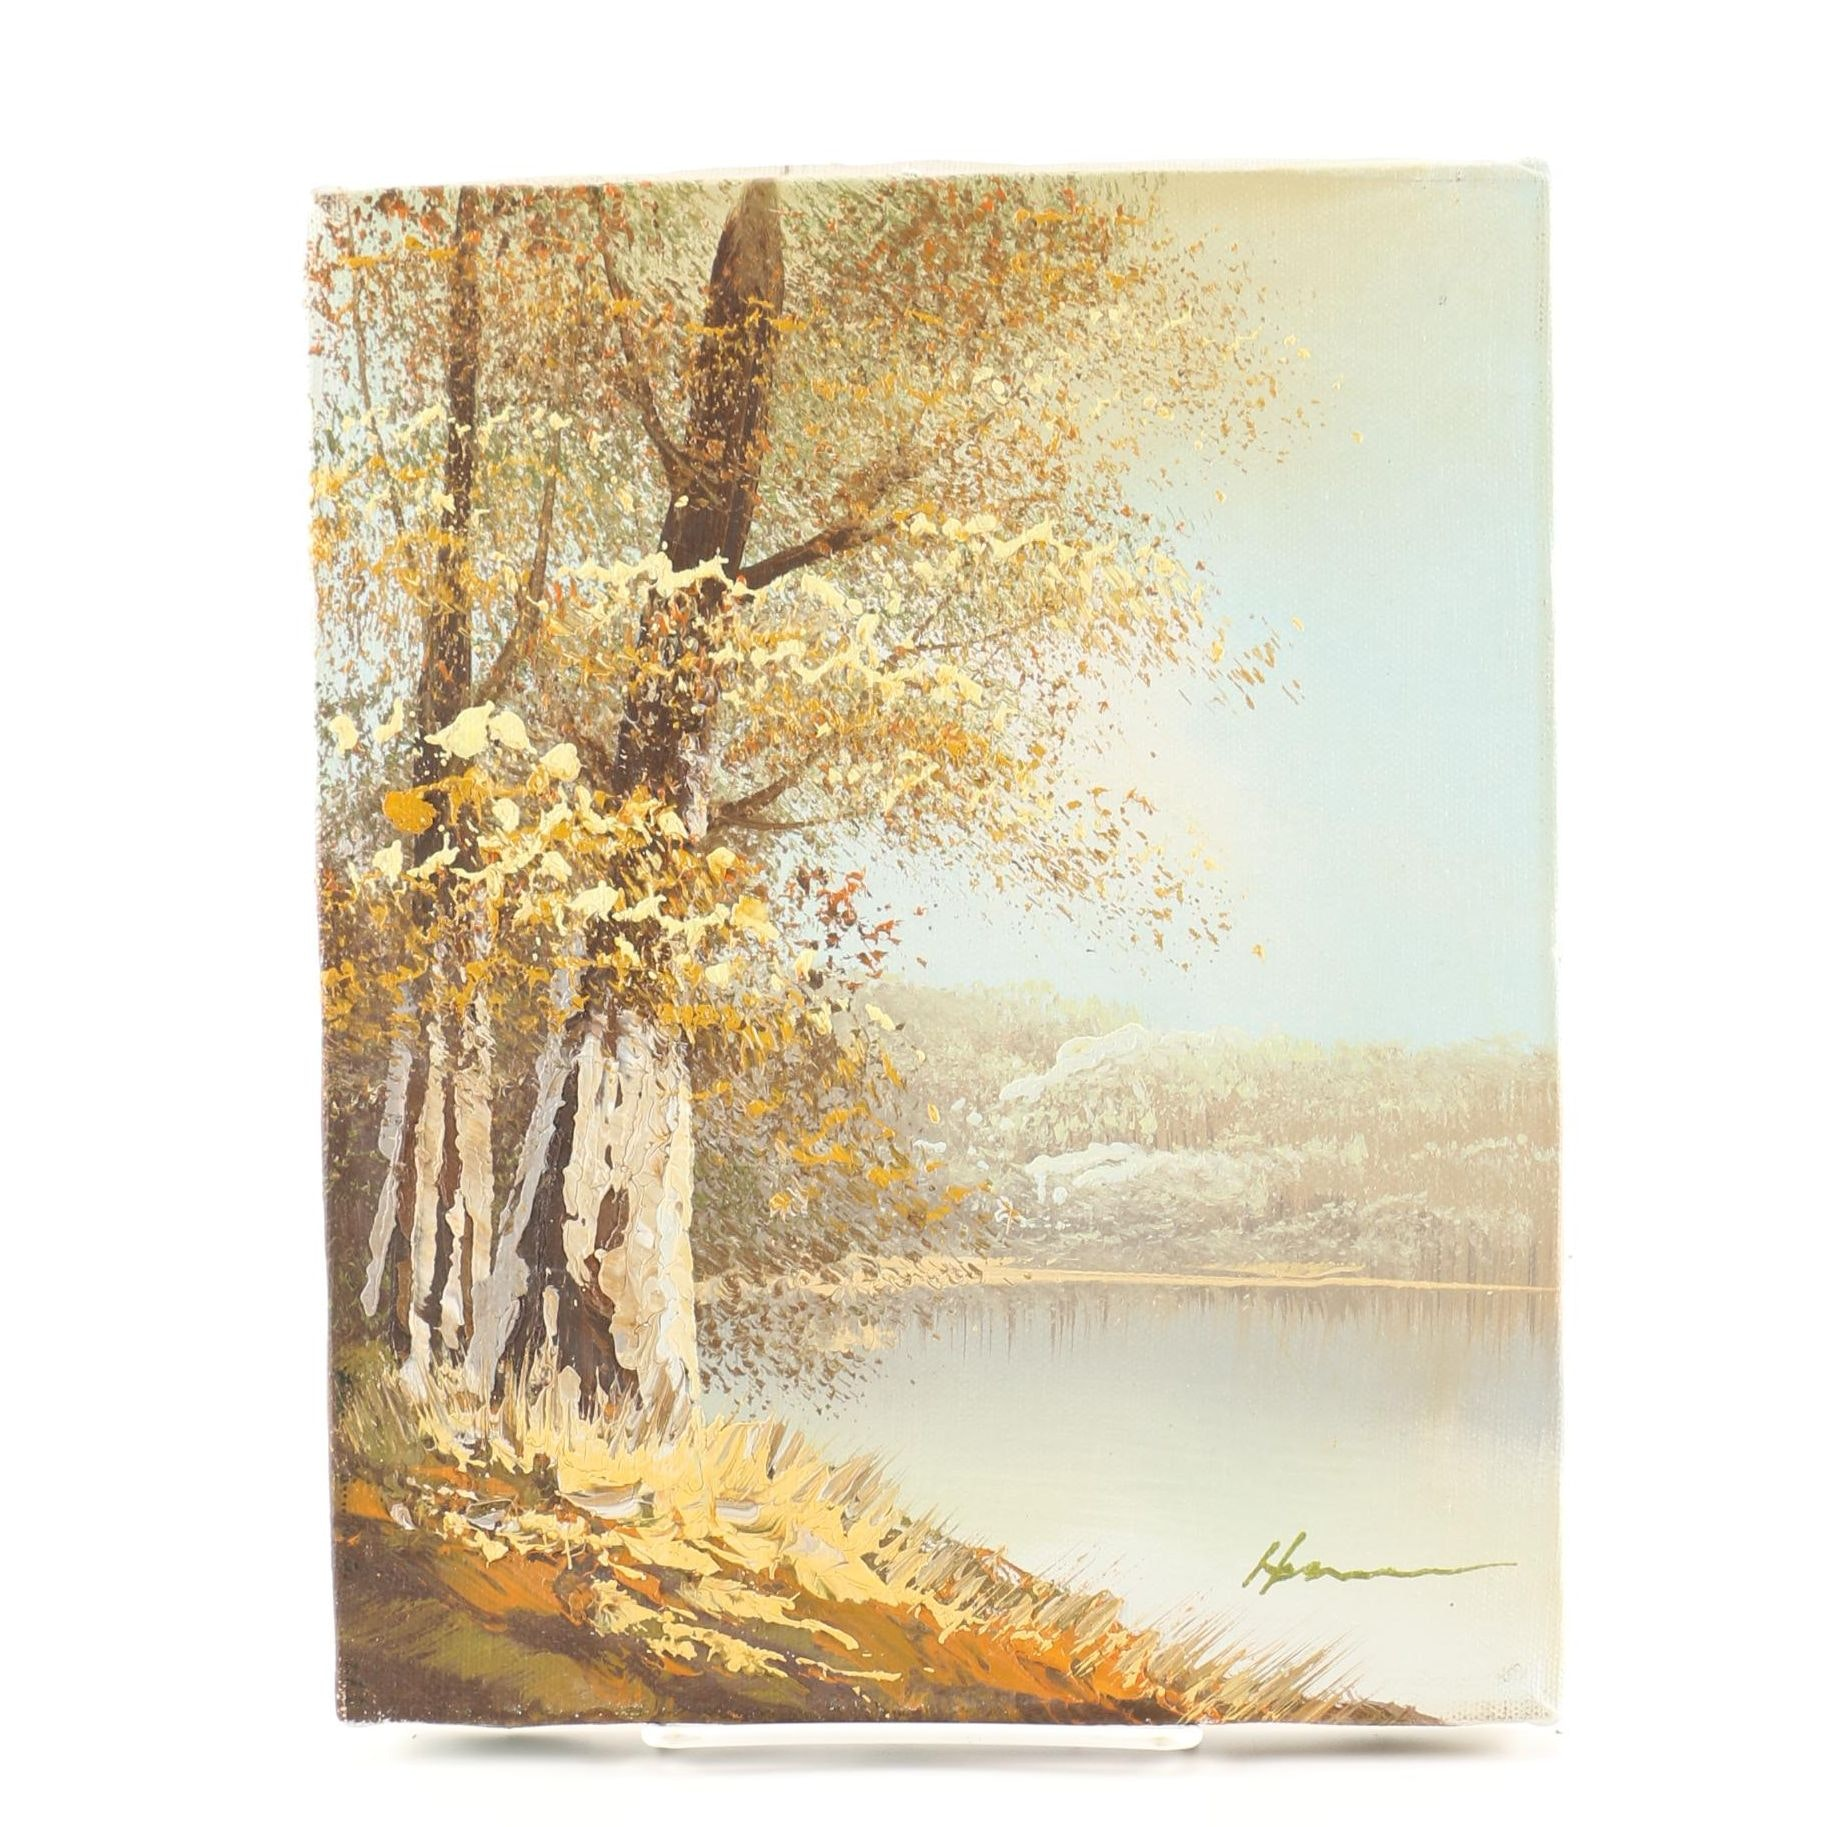 Oil Painting on Stretched Canvas of an Autumnal Landscape